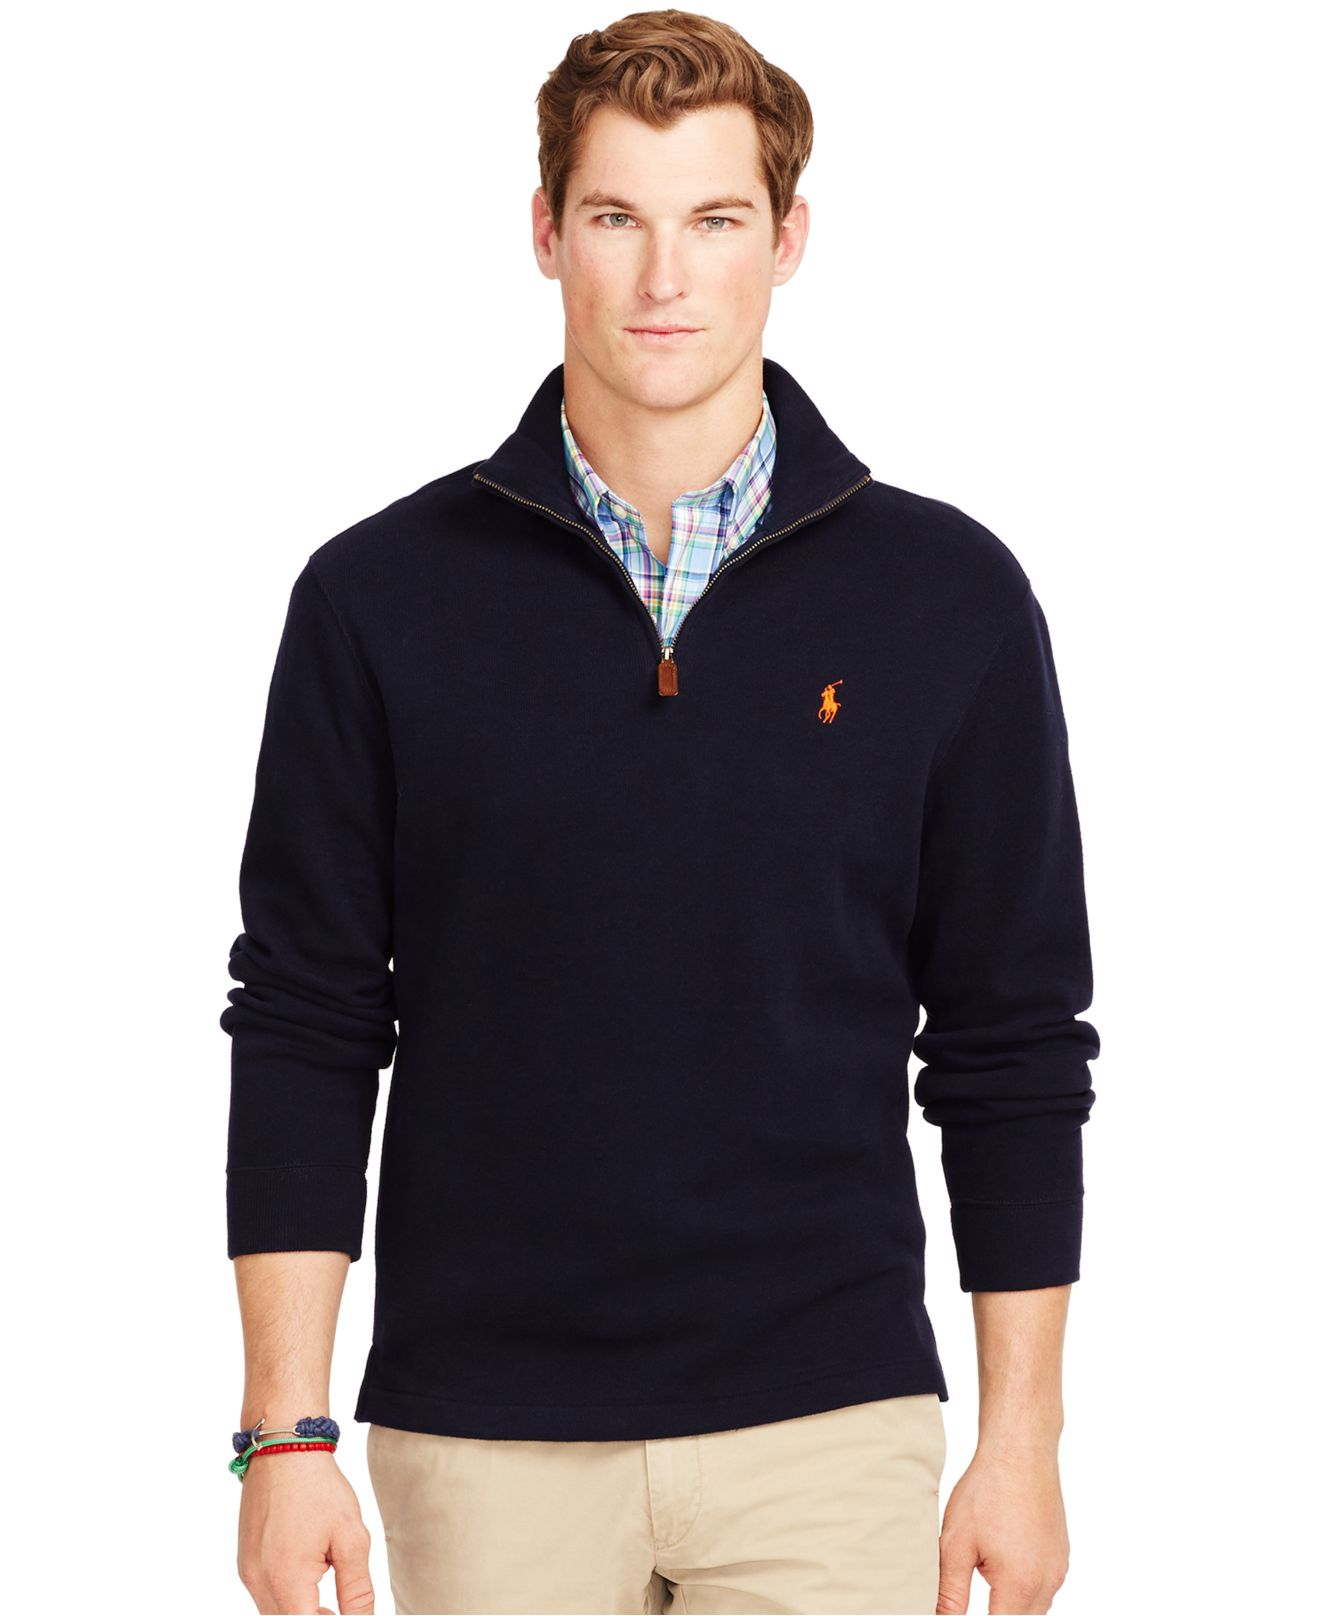 polo ralph lauren french rib half zip pullover in blue for men hunter. Black Bedroom Furniture Sets. Home Design Ideas